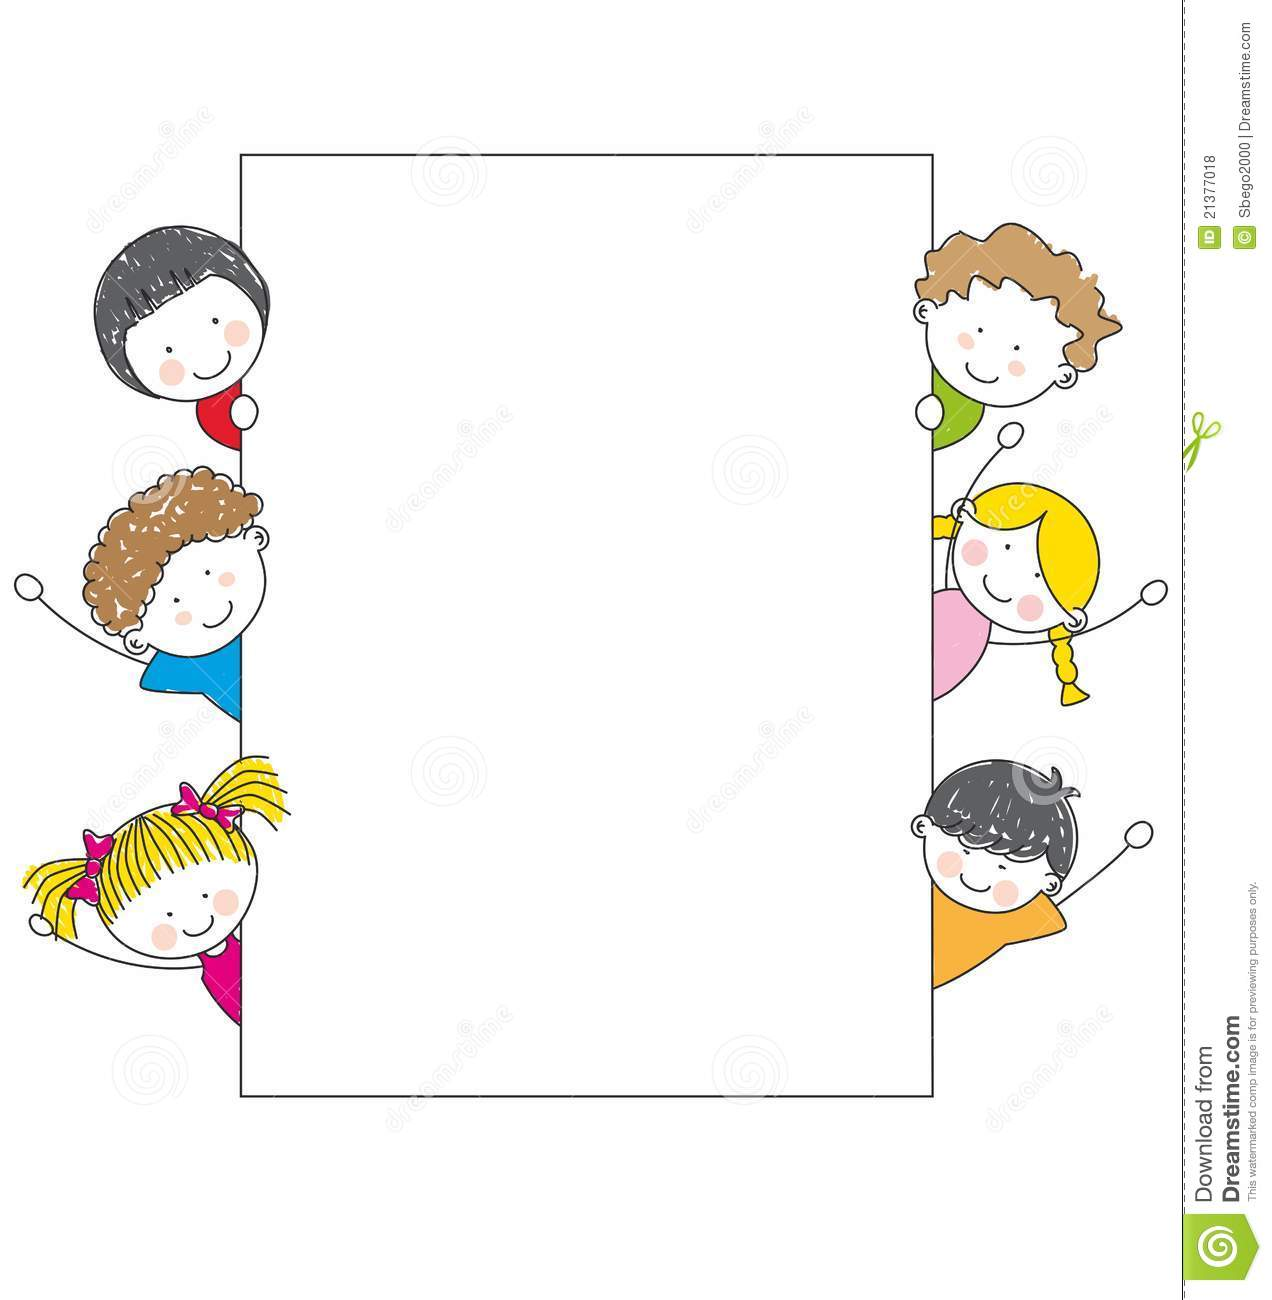 Cute cartoon kids frame stock vector. Illustration of face - 21377018